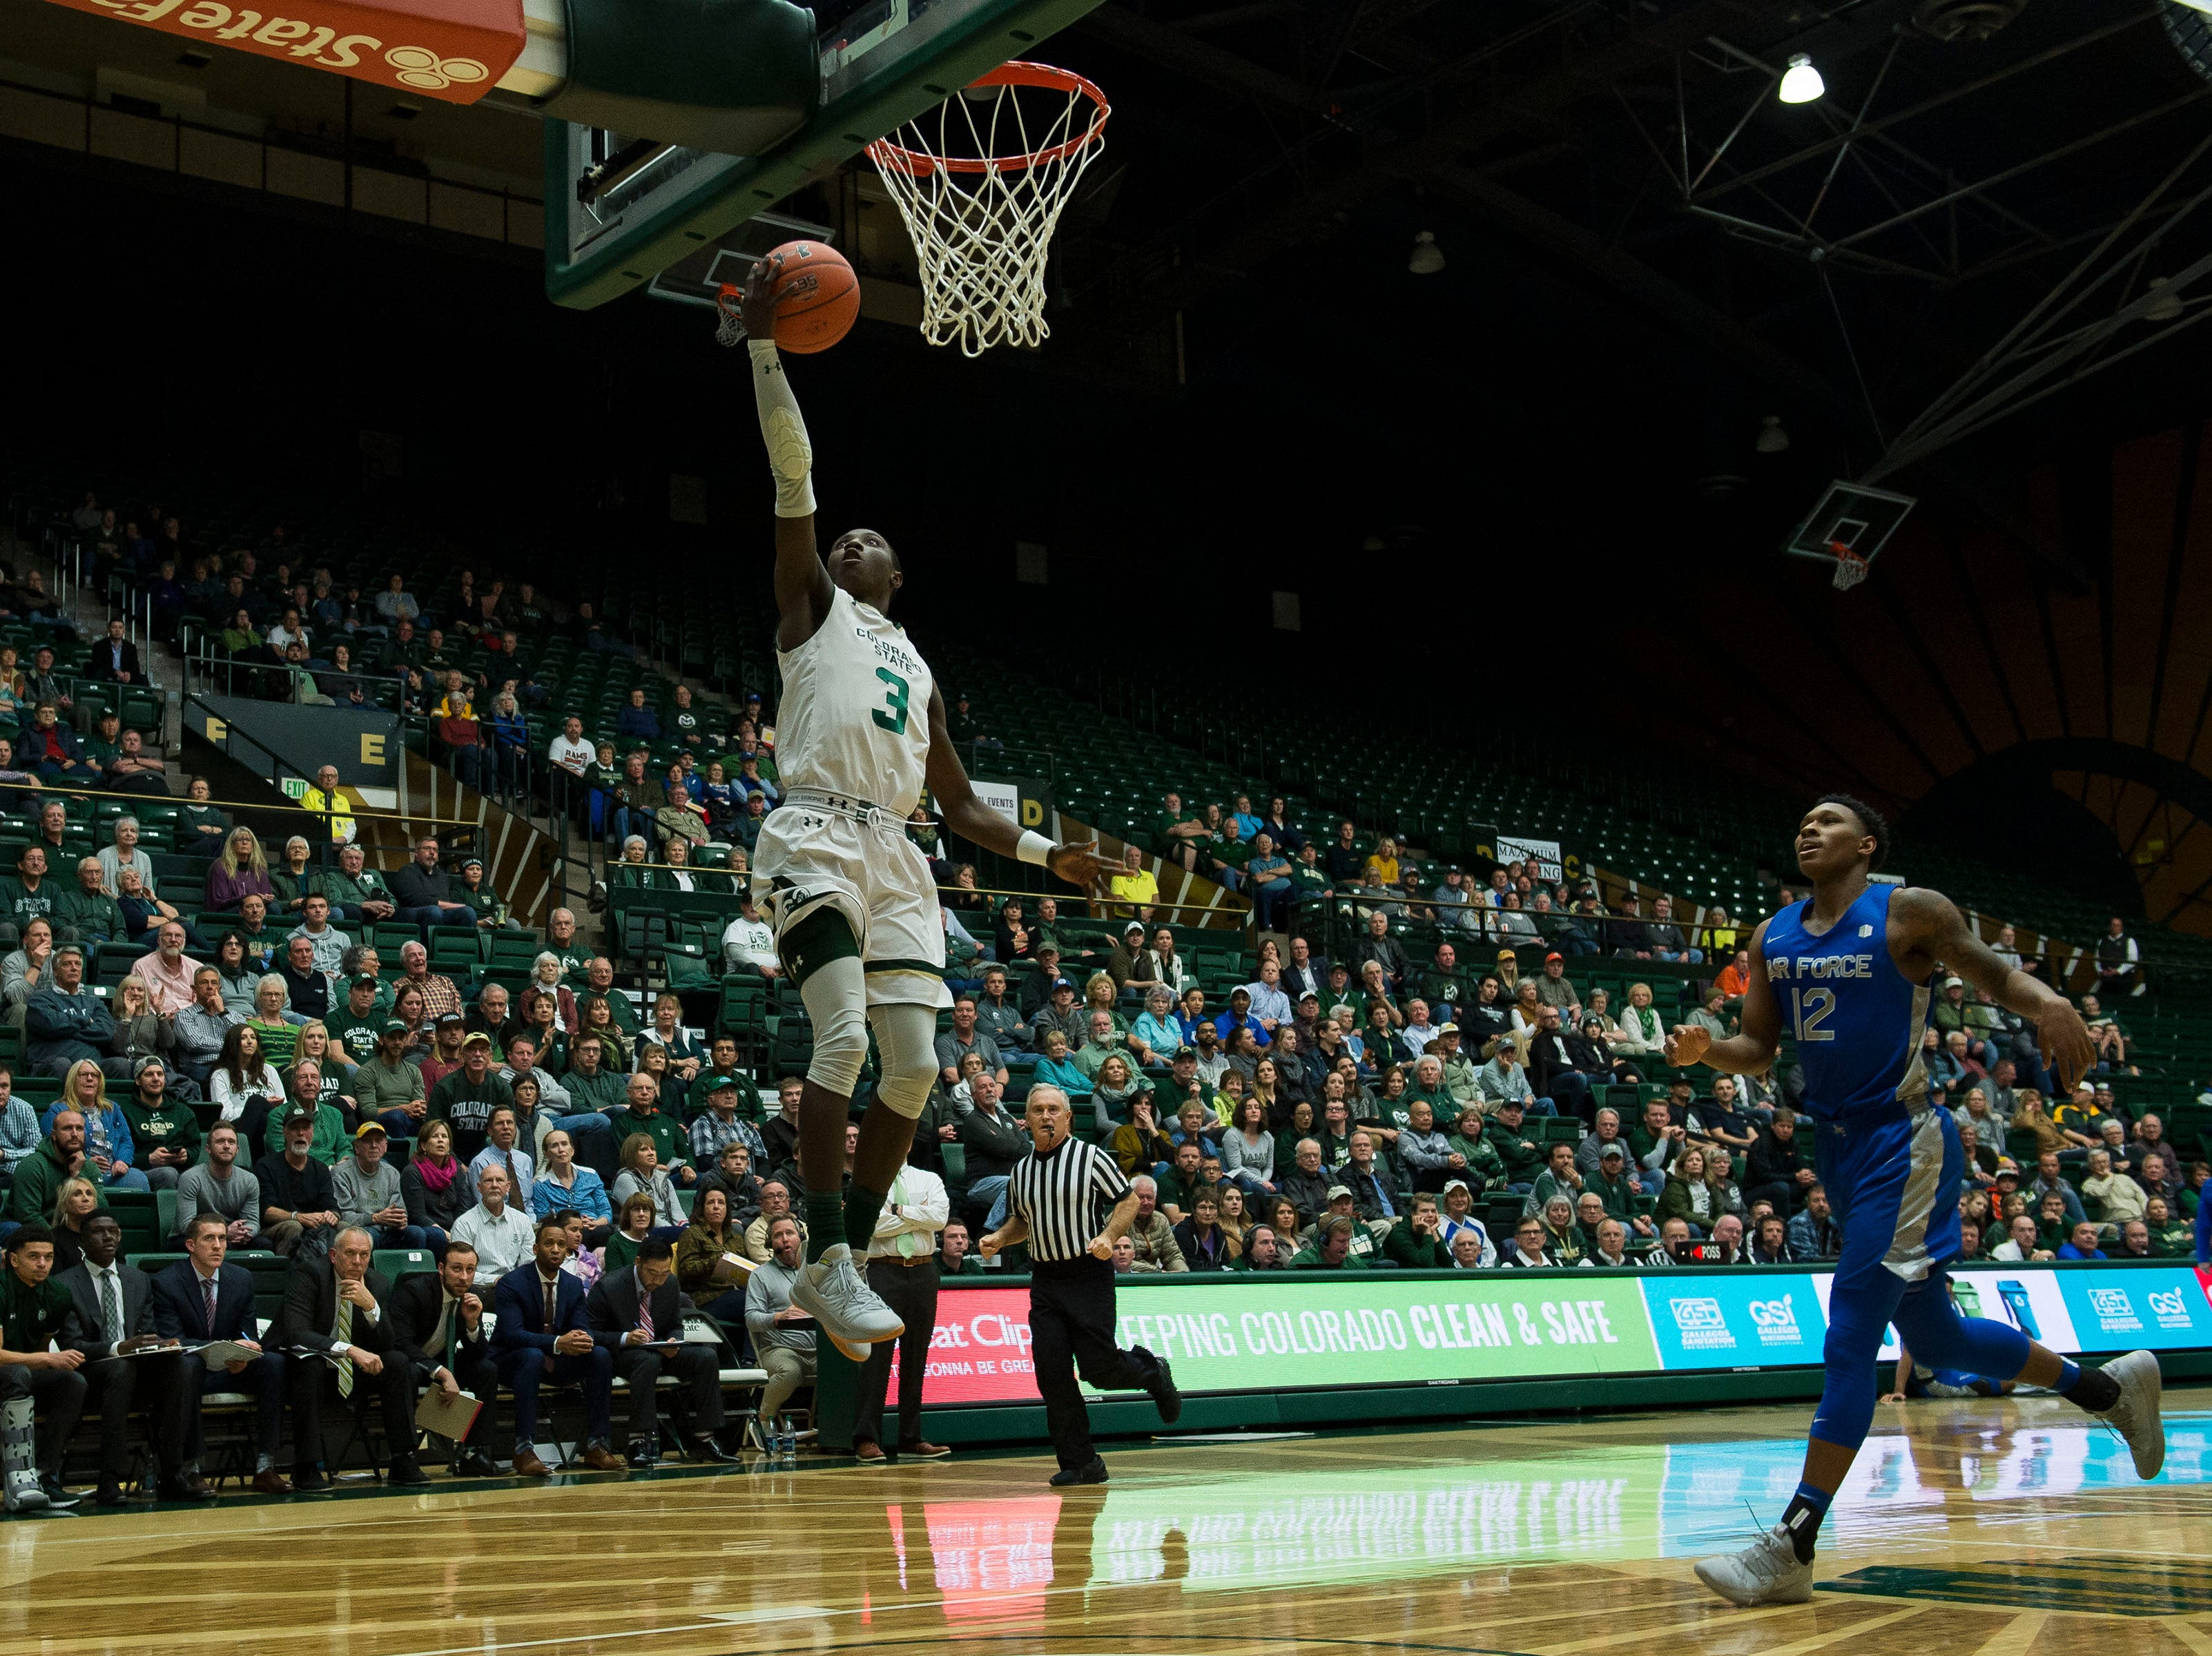 Colorado State University freshman guard Kendle Moore (3) breaks free for a layup off a pass from guard Kris Martin (30) during a game against the Air Force Academy sophomore guard Keaton Van Soelen (44) on Tuesday, Jan. 8, 2019, at Moby Arena in Fort Collins, Colo.